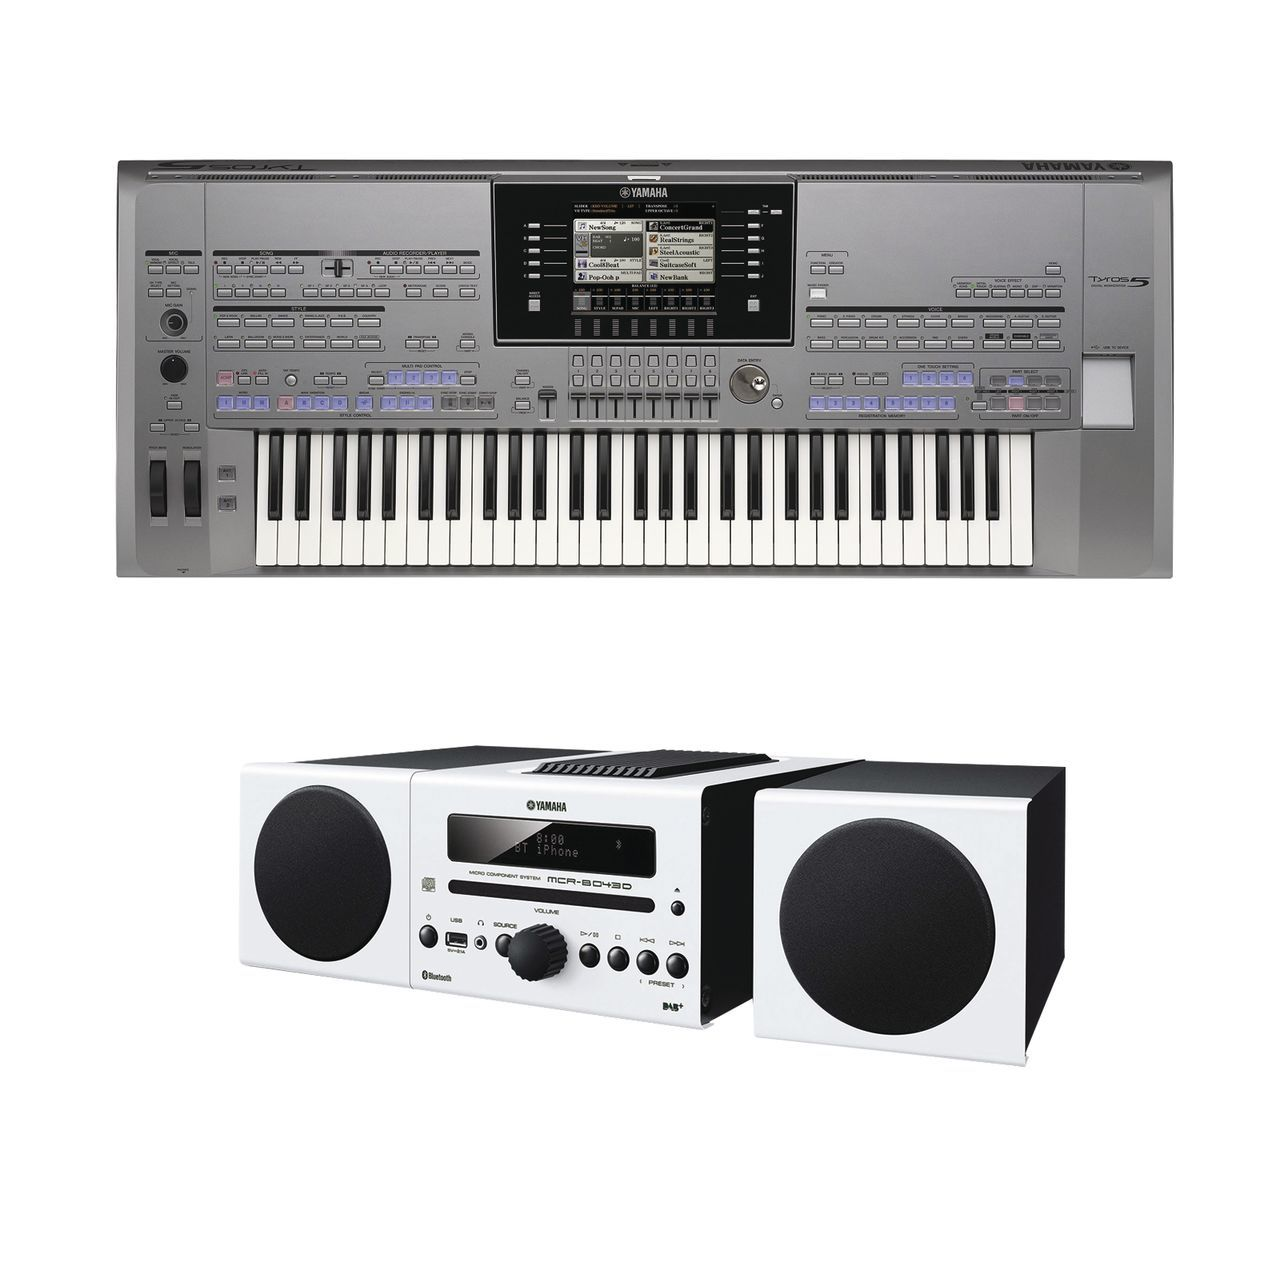 yamaha tyros 5 61 inkl mcr b043d hifi anlage und gratis. Black Bedroom Furniture Sets. Home Design Ideas